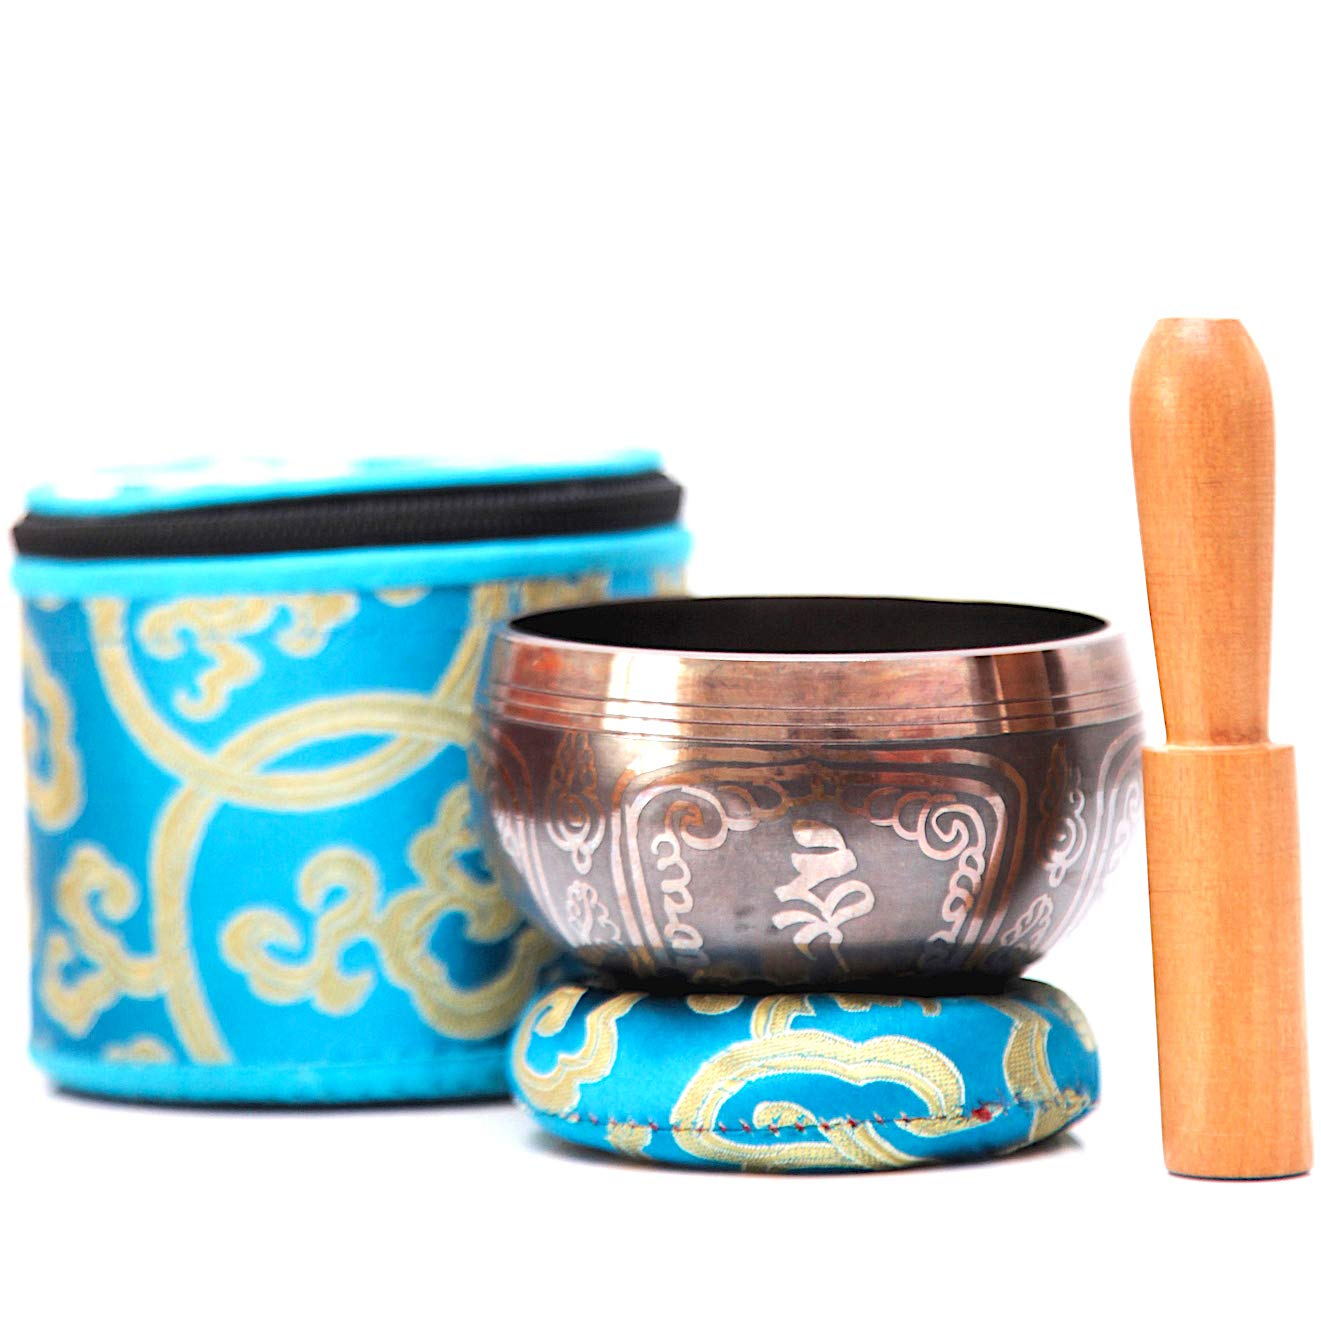 PANDA LIFESTYLE Tibetan Singing Bowl Set | Traditional Bronze Mantra Design with Cushion, Mallet, and Storage Box for Mediation, Yoga and Healthy ...